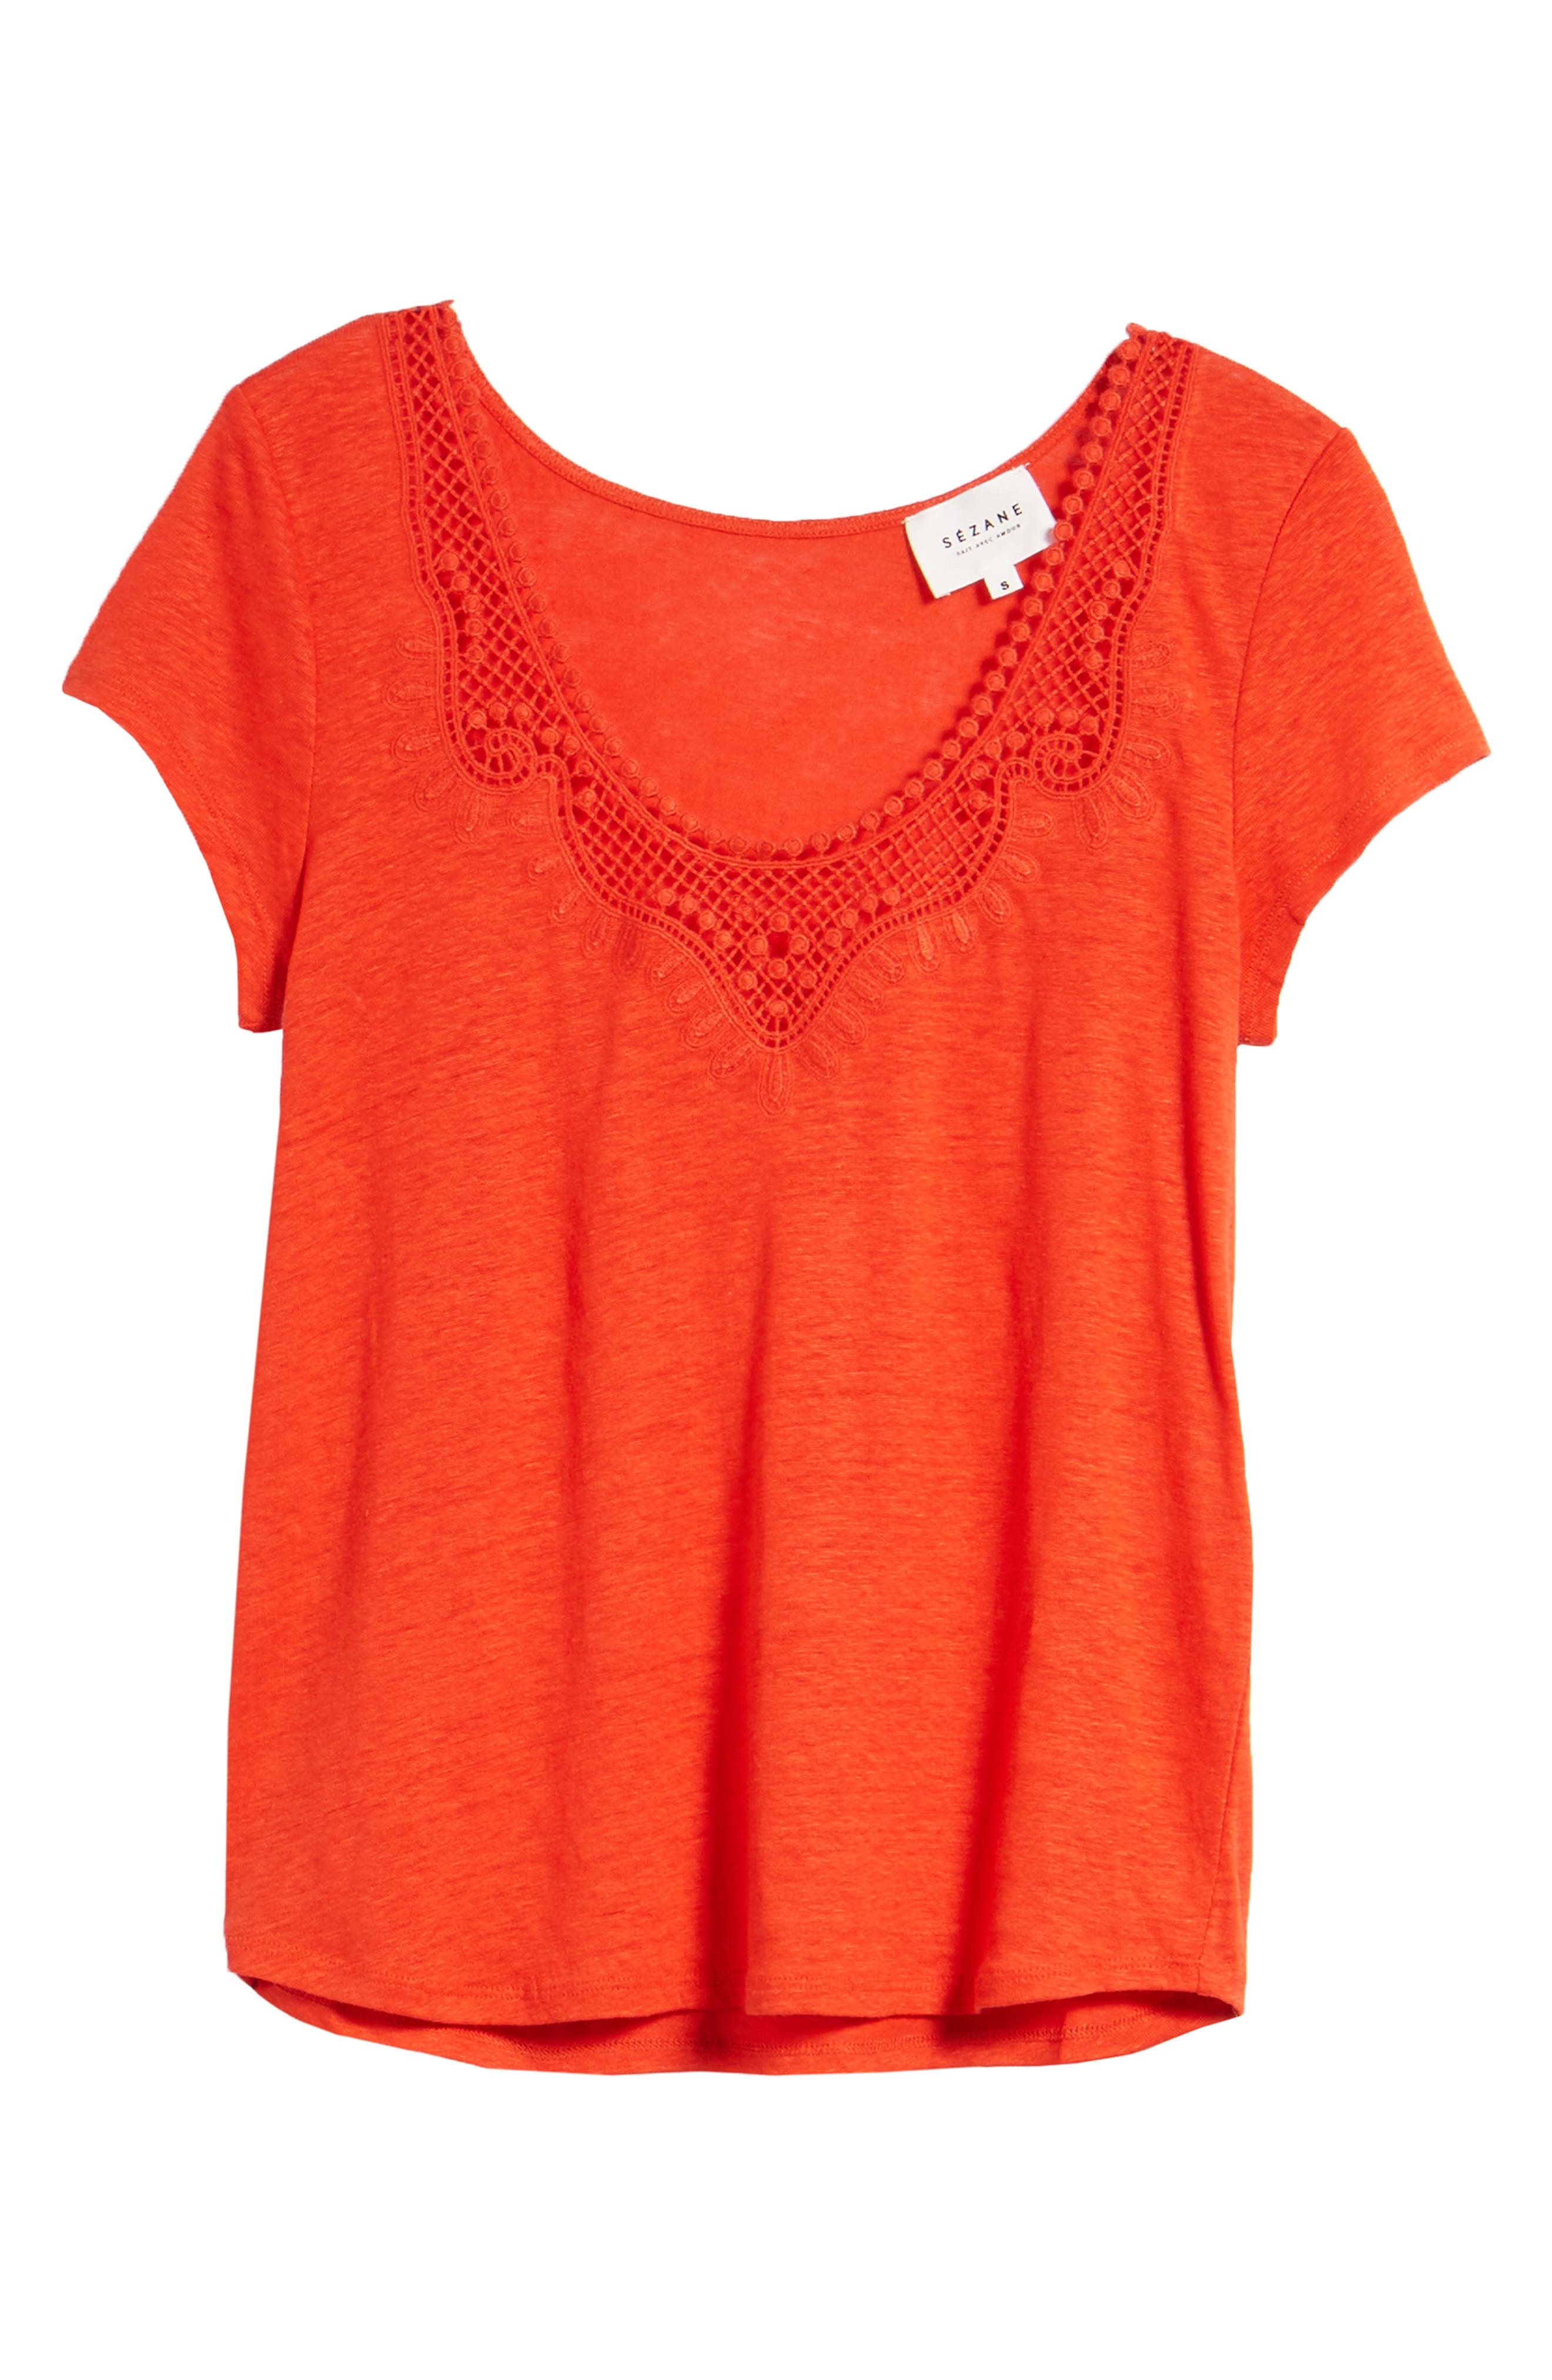 Loly Crochet Neck Linen Tee,                             Alternate thumbnail 6, color,                             Coral Red